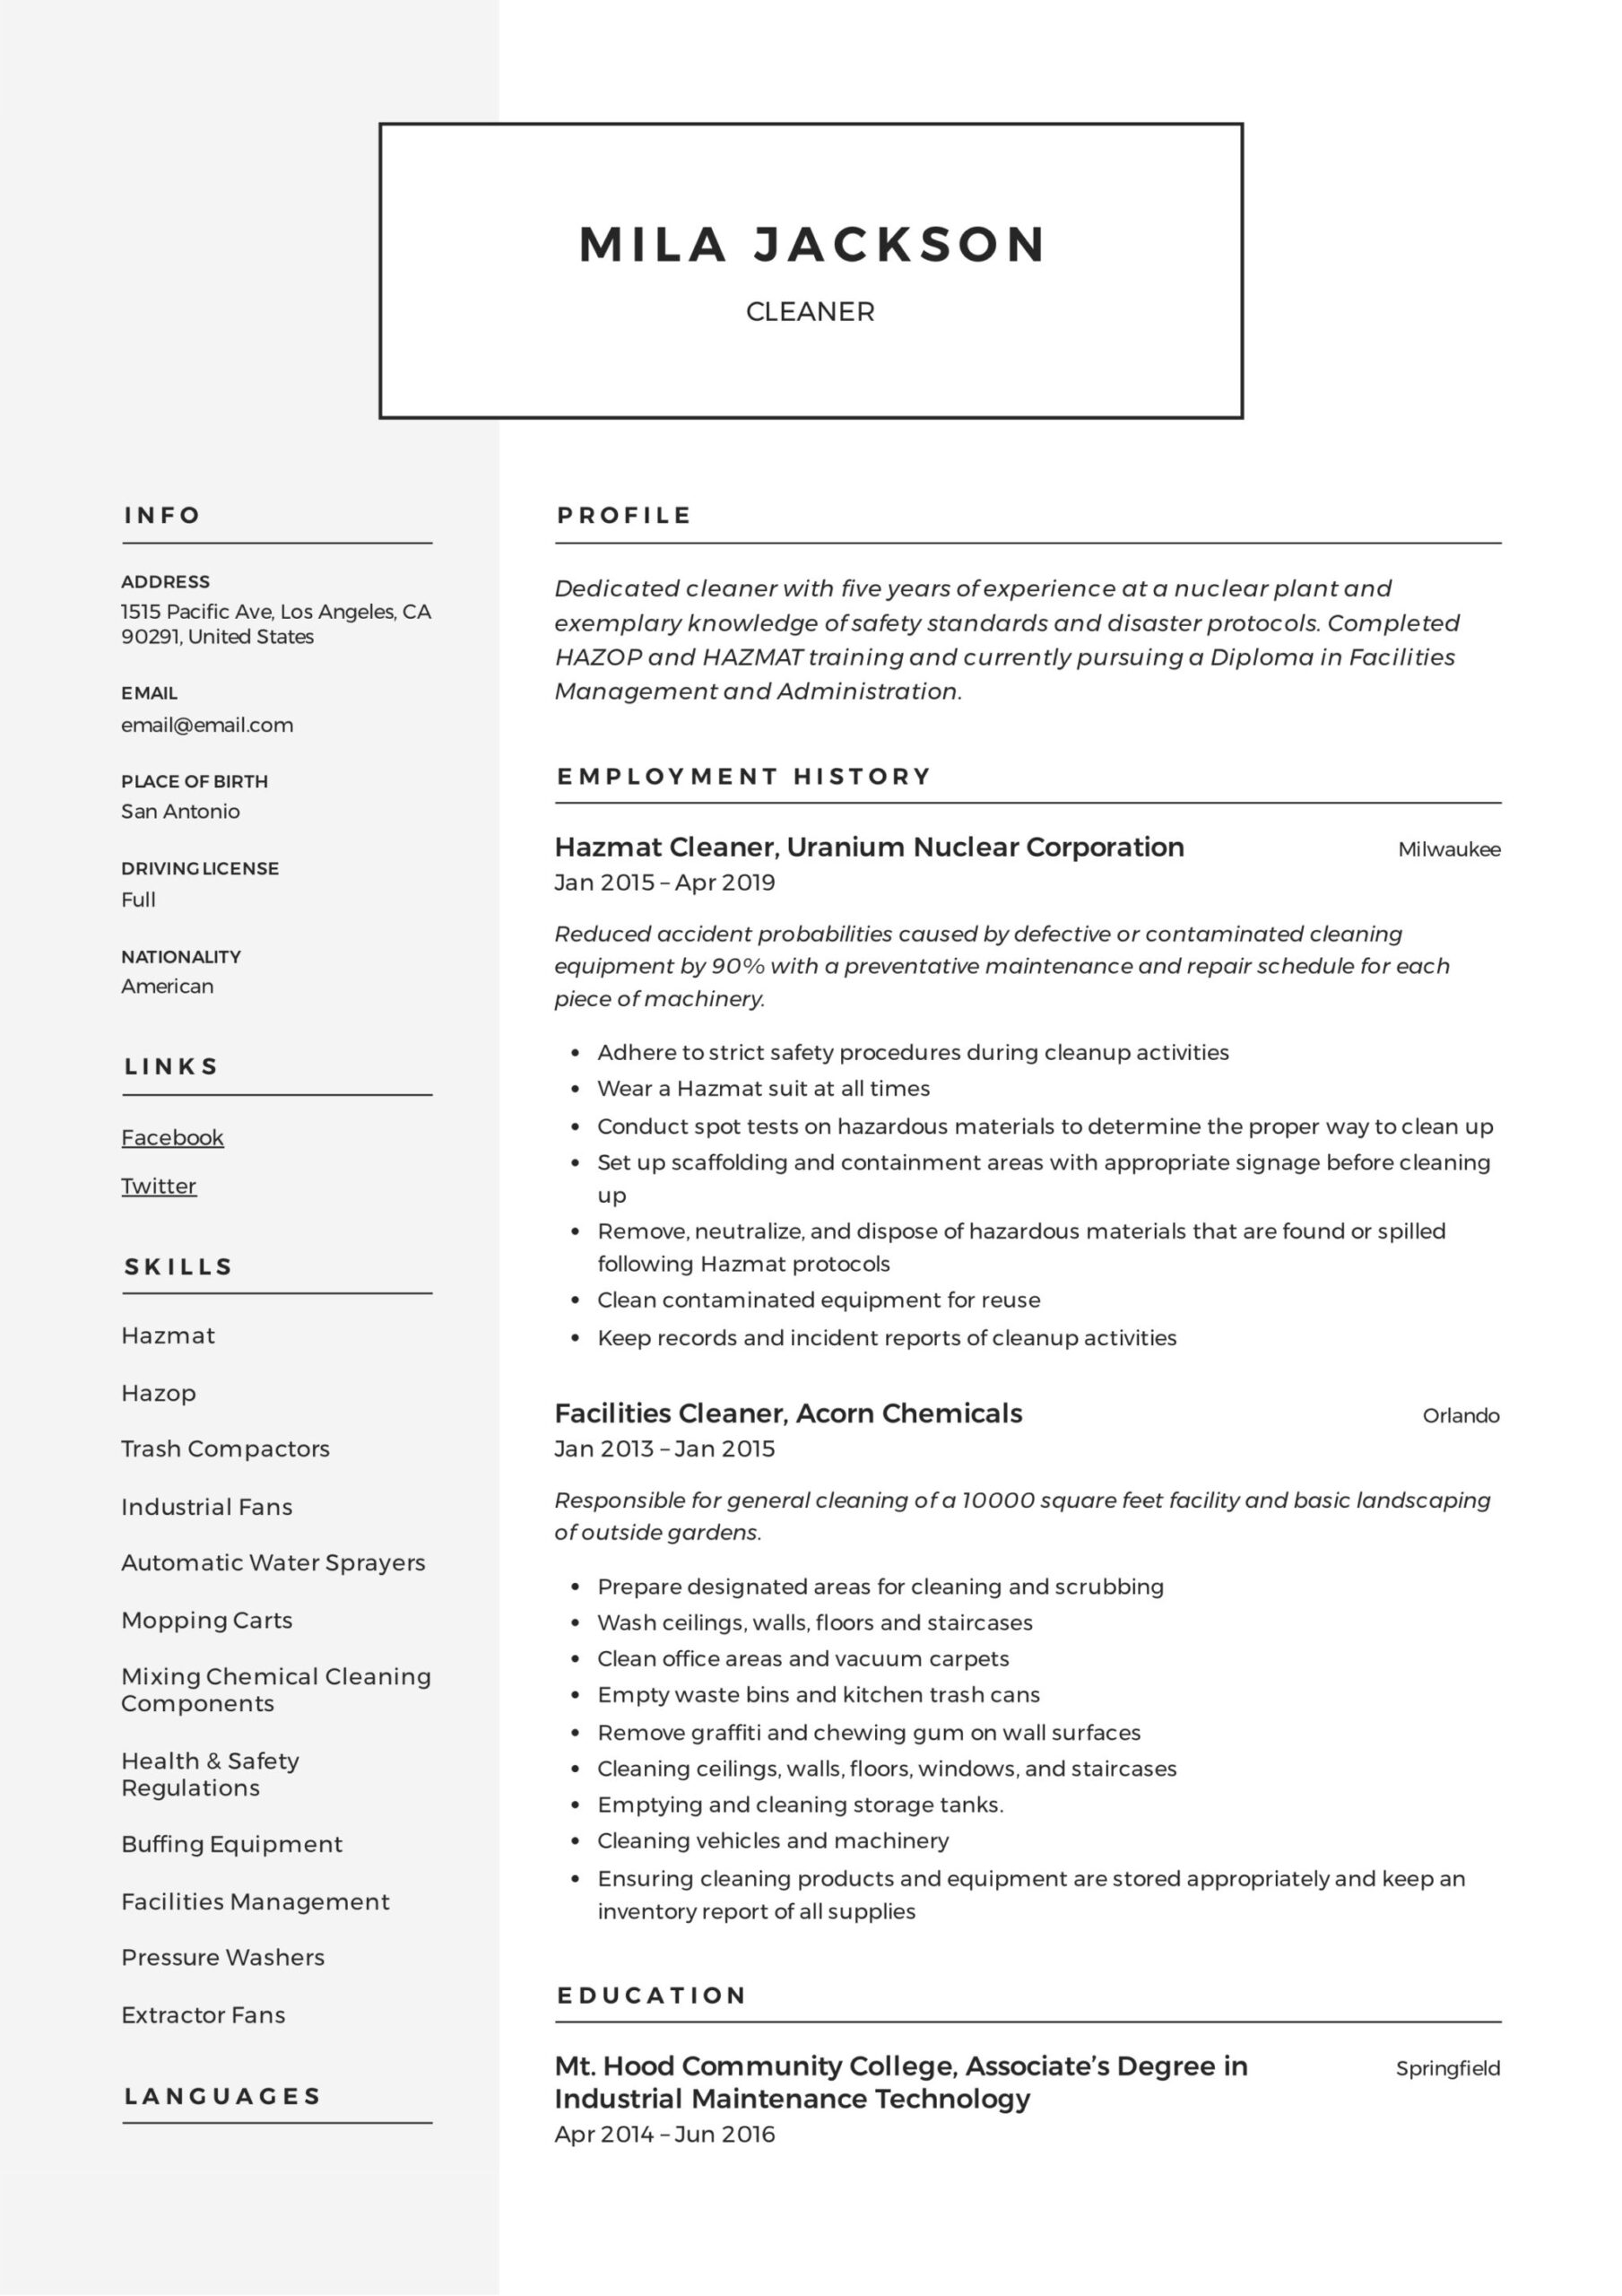 cleaner resume writing guide templates pdf construction mila hvac sample google retail Resume Construction Cleaner Resume